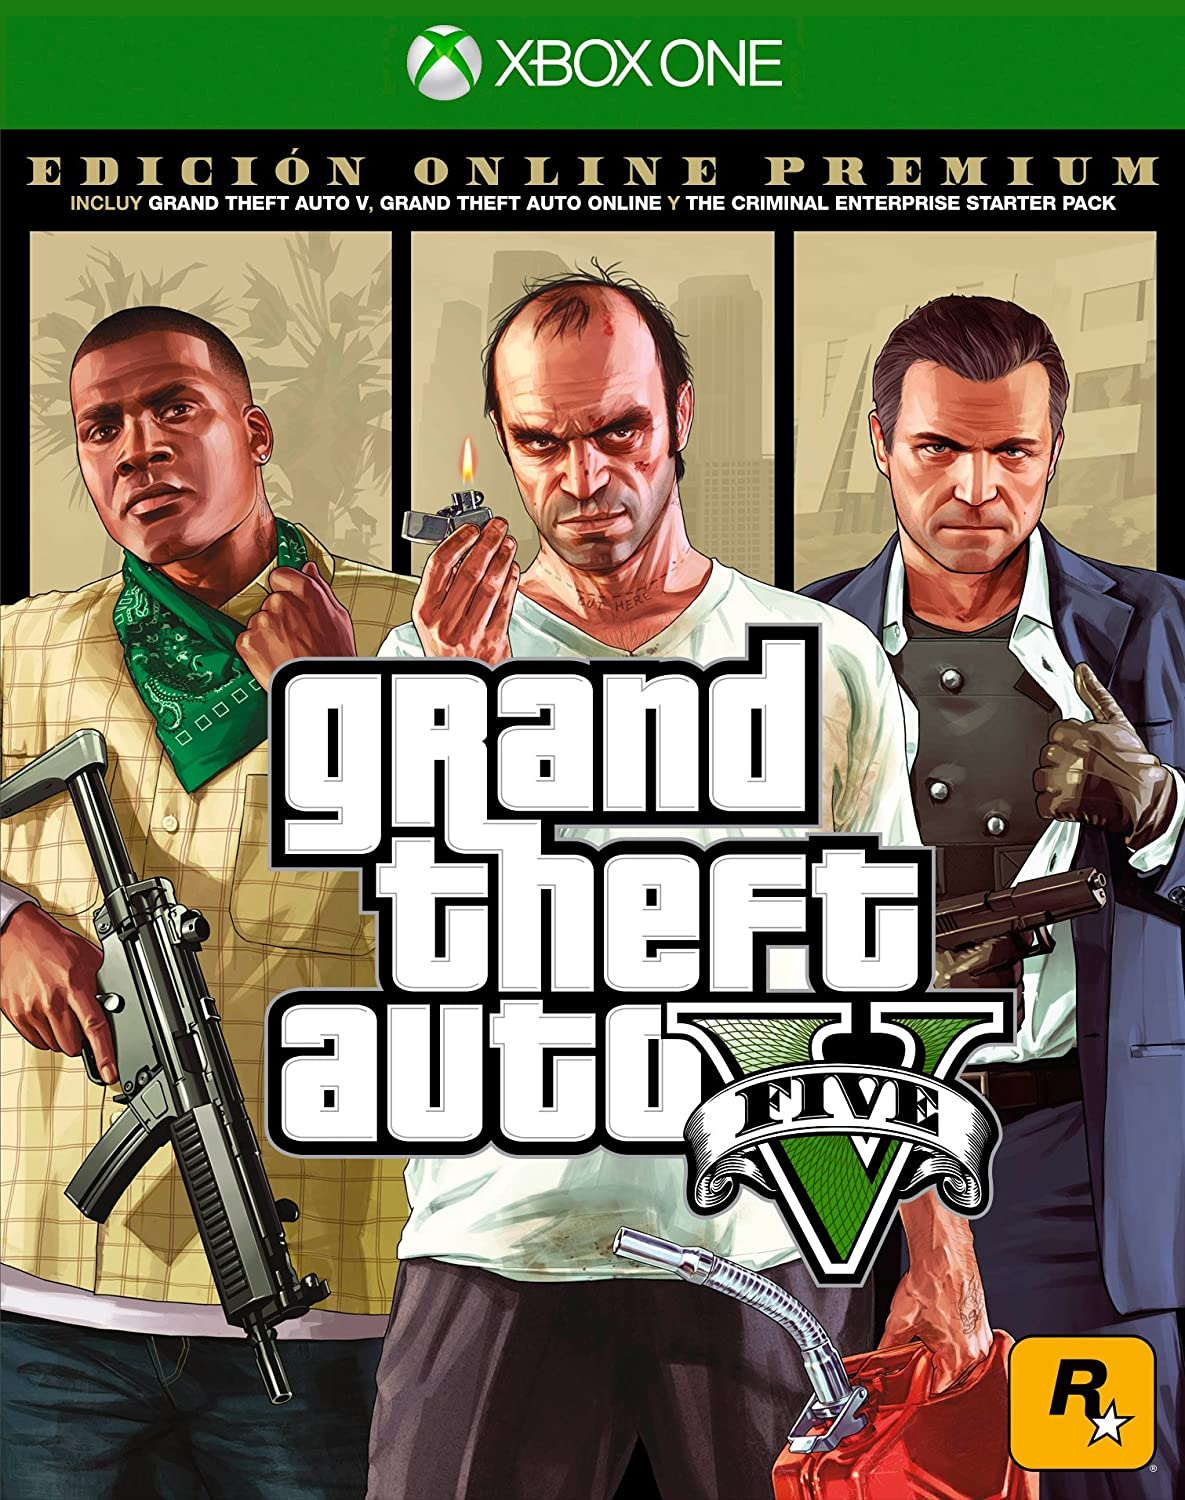 Video Theft One Edition Games V Standard Premium Amazon in Edition - Grand Xbox Auto Online